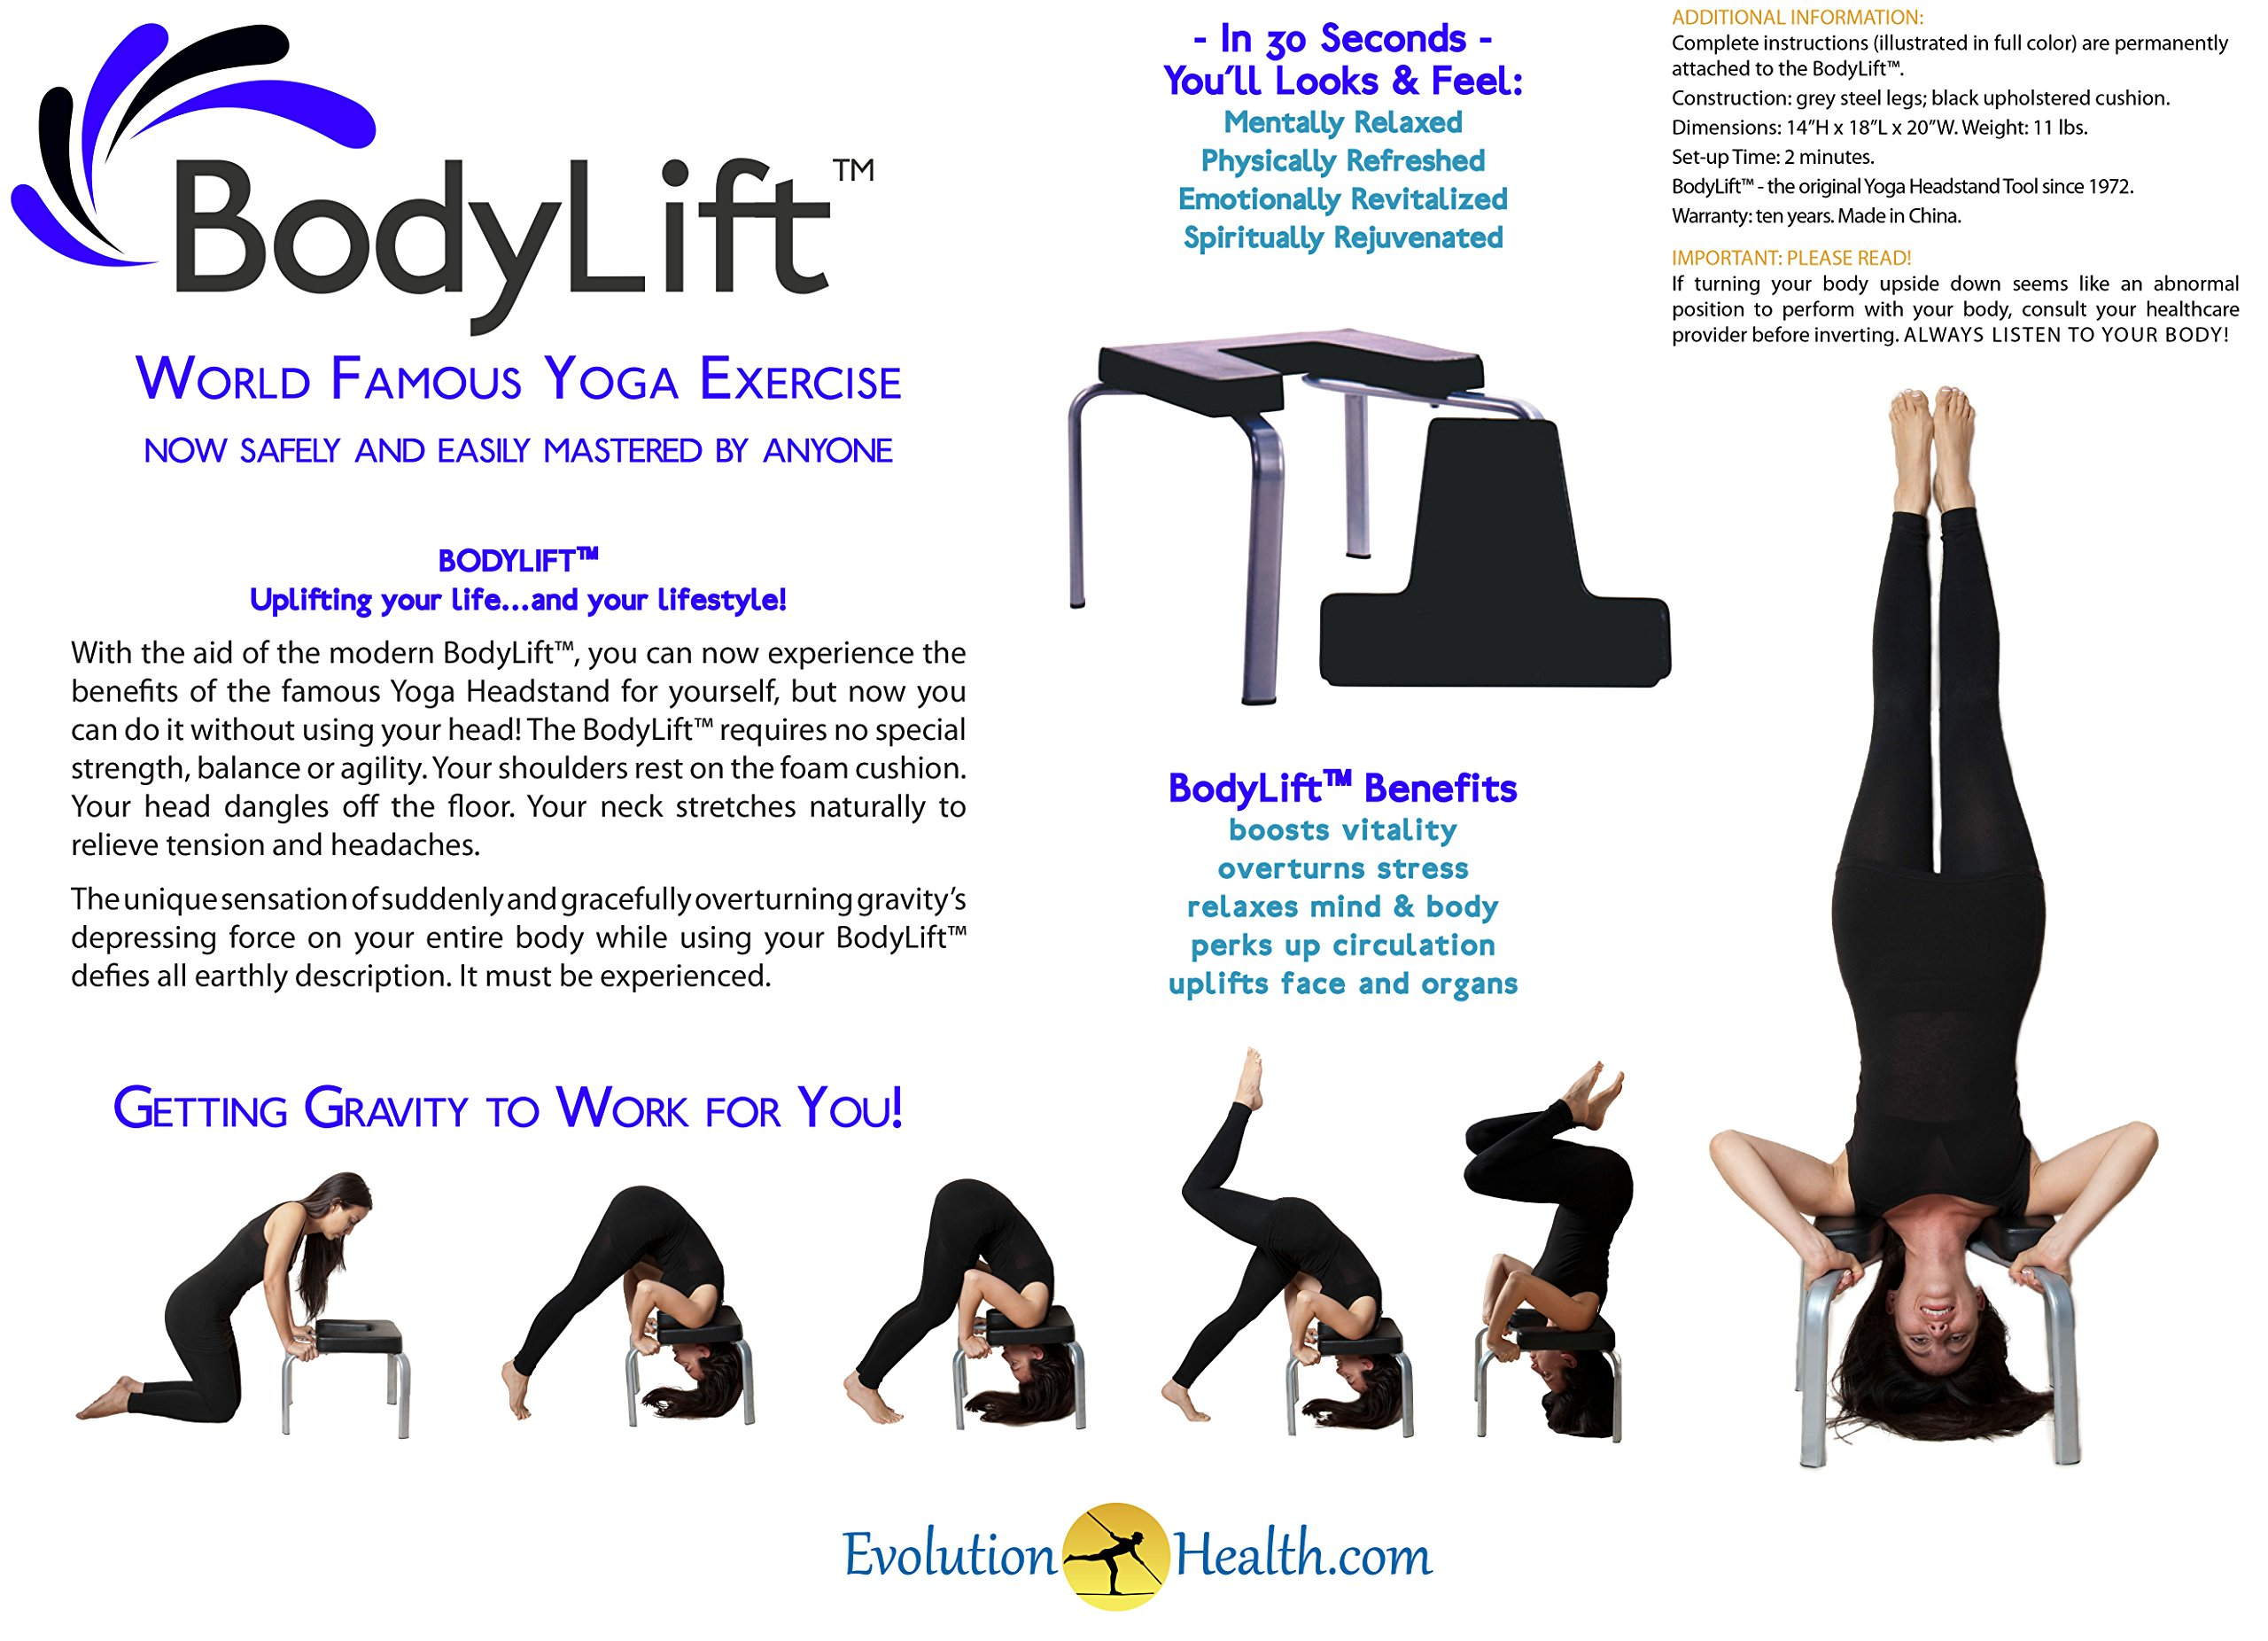 Original Bodylift headstand bench/ yoga chair by Evolution Health